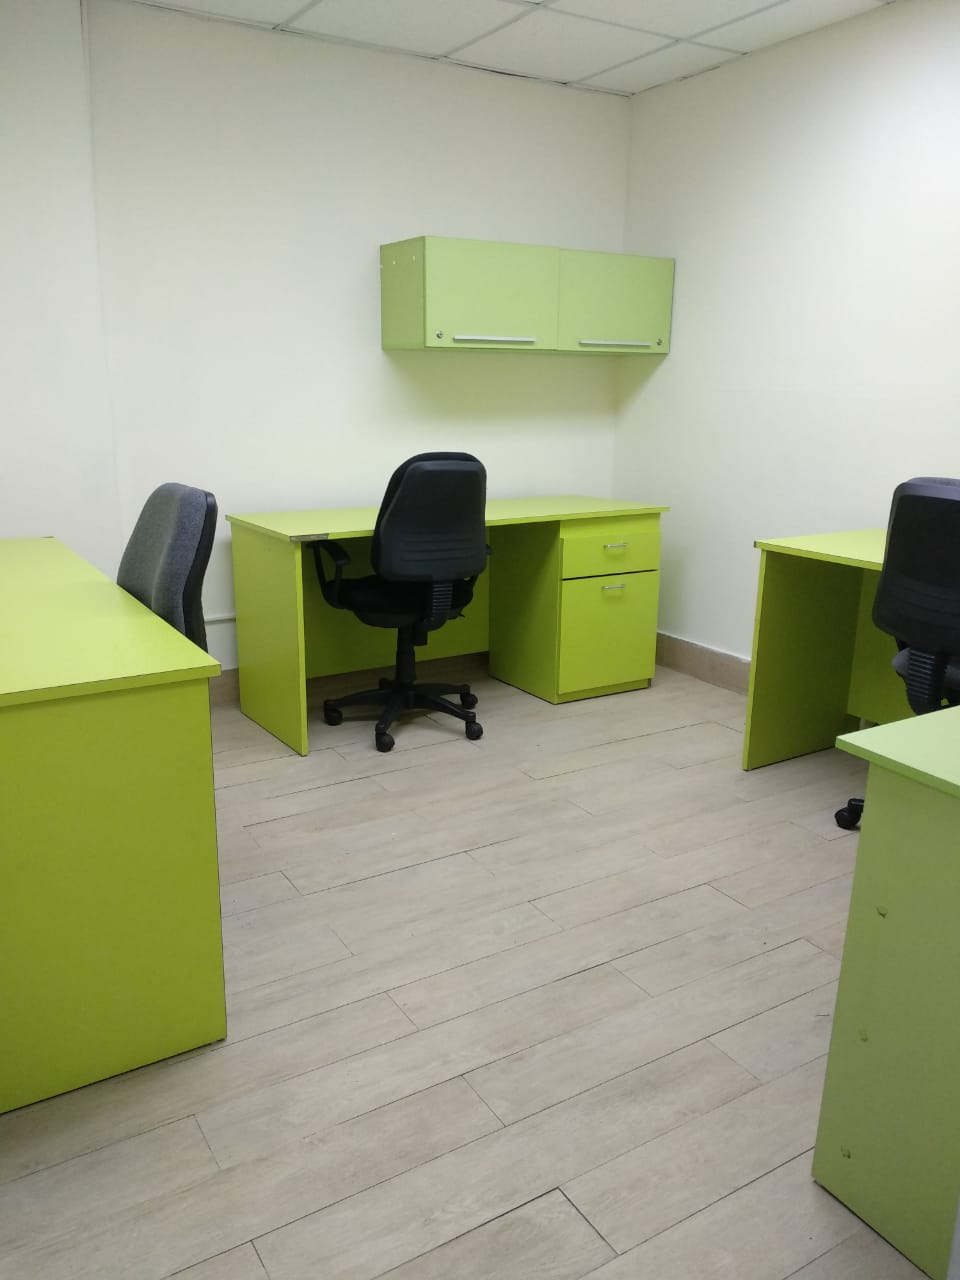 Panama City Virtual Office Space - Comfortable Commons Area